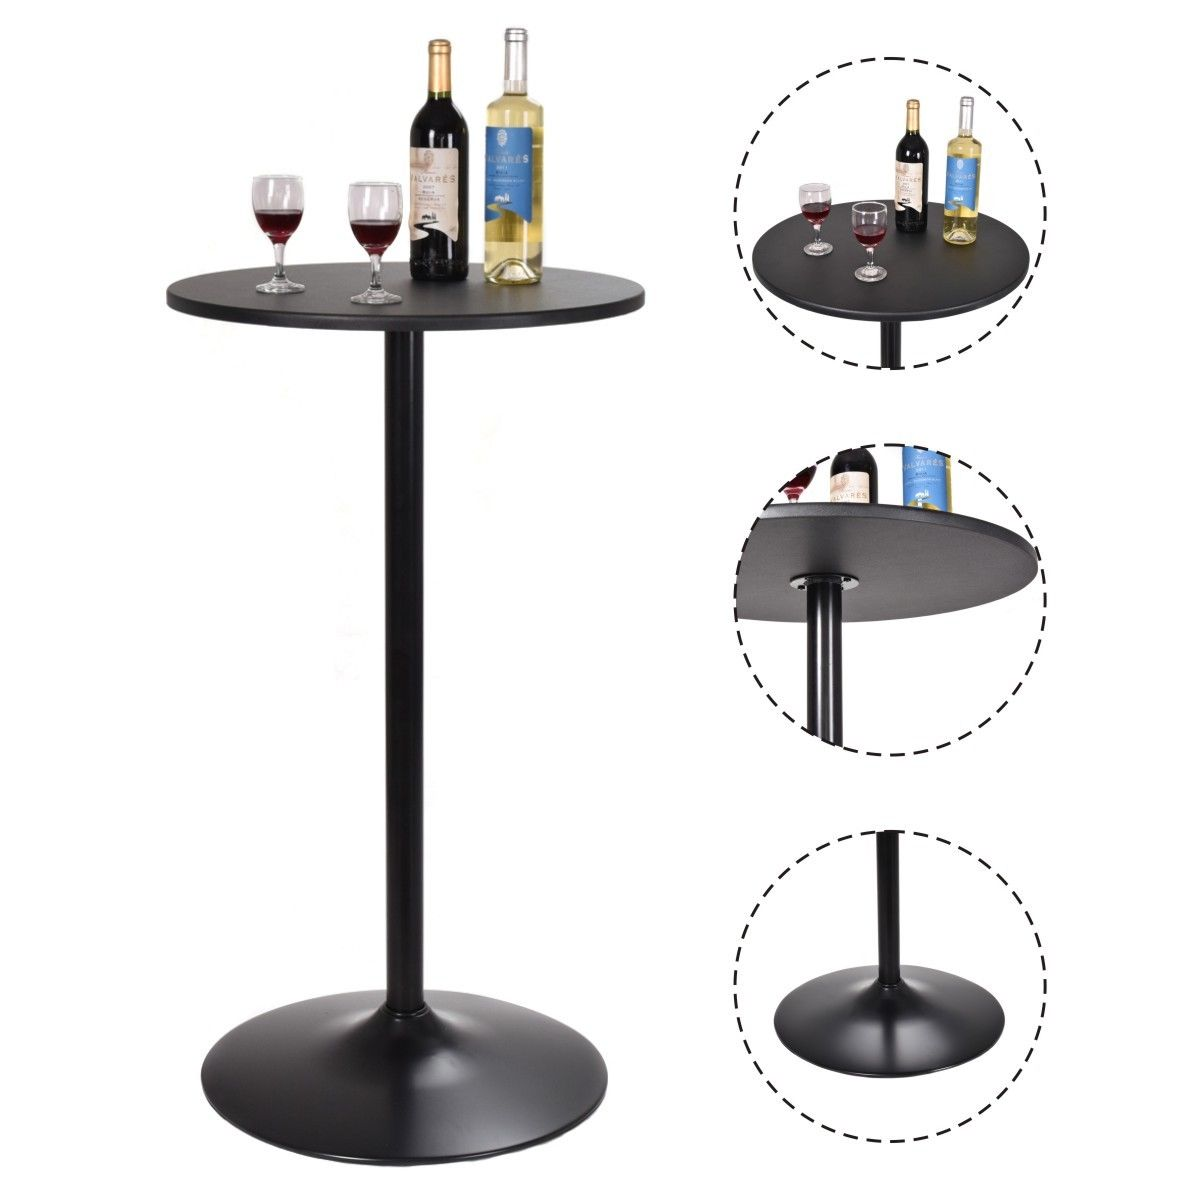 Costway 24'' Dia Round Pub Table Bistro Pub Counter Home Outdoor Indoor Kitchen Furniture by Costway